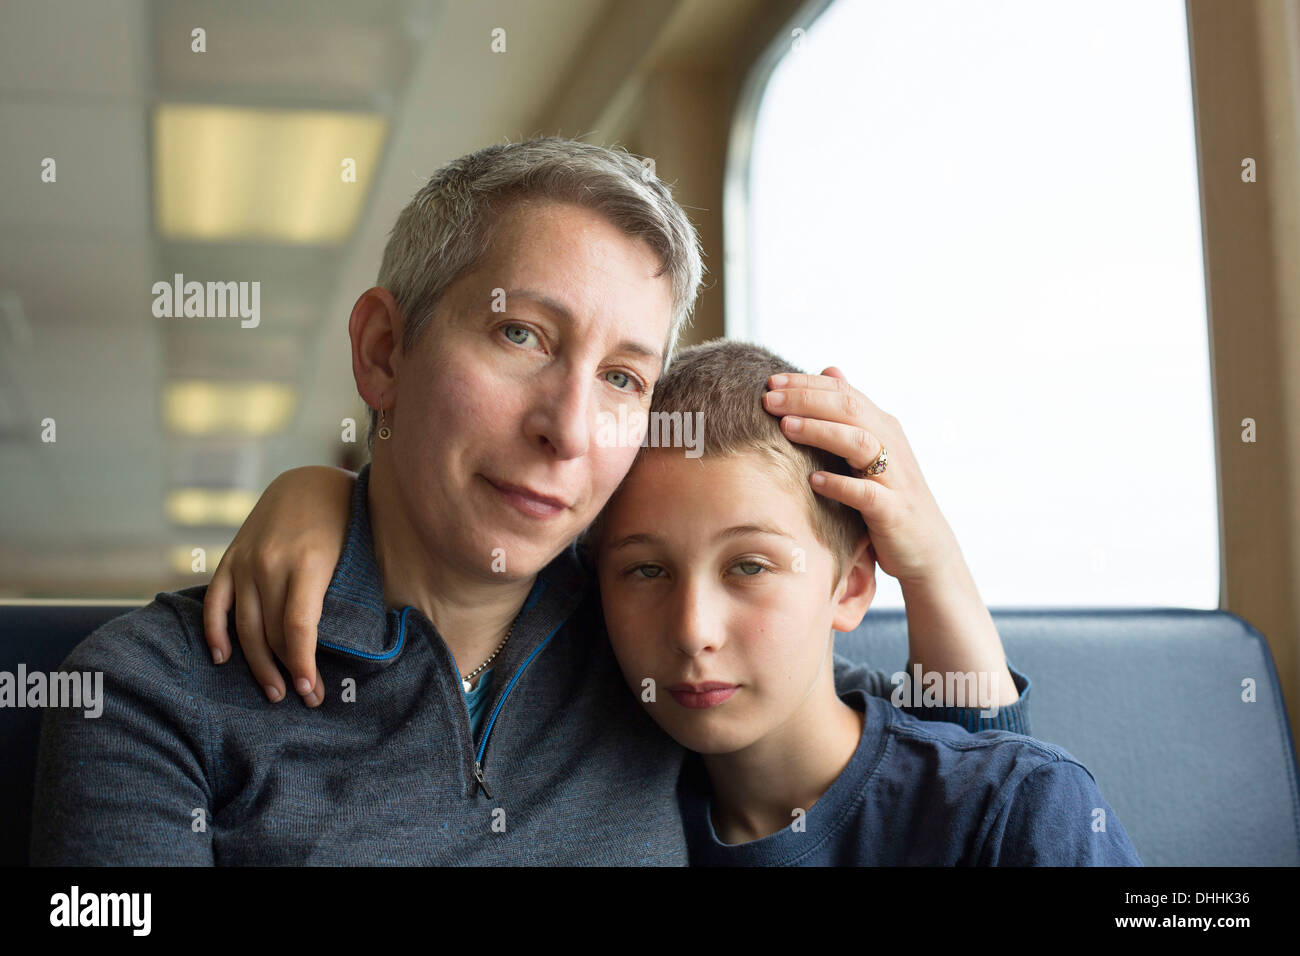 Mother and son sitting together with arm around - Stock Image